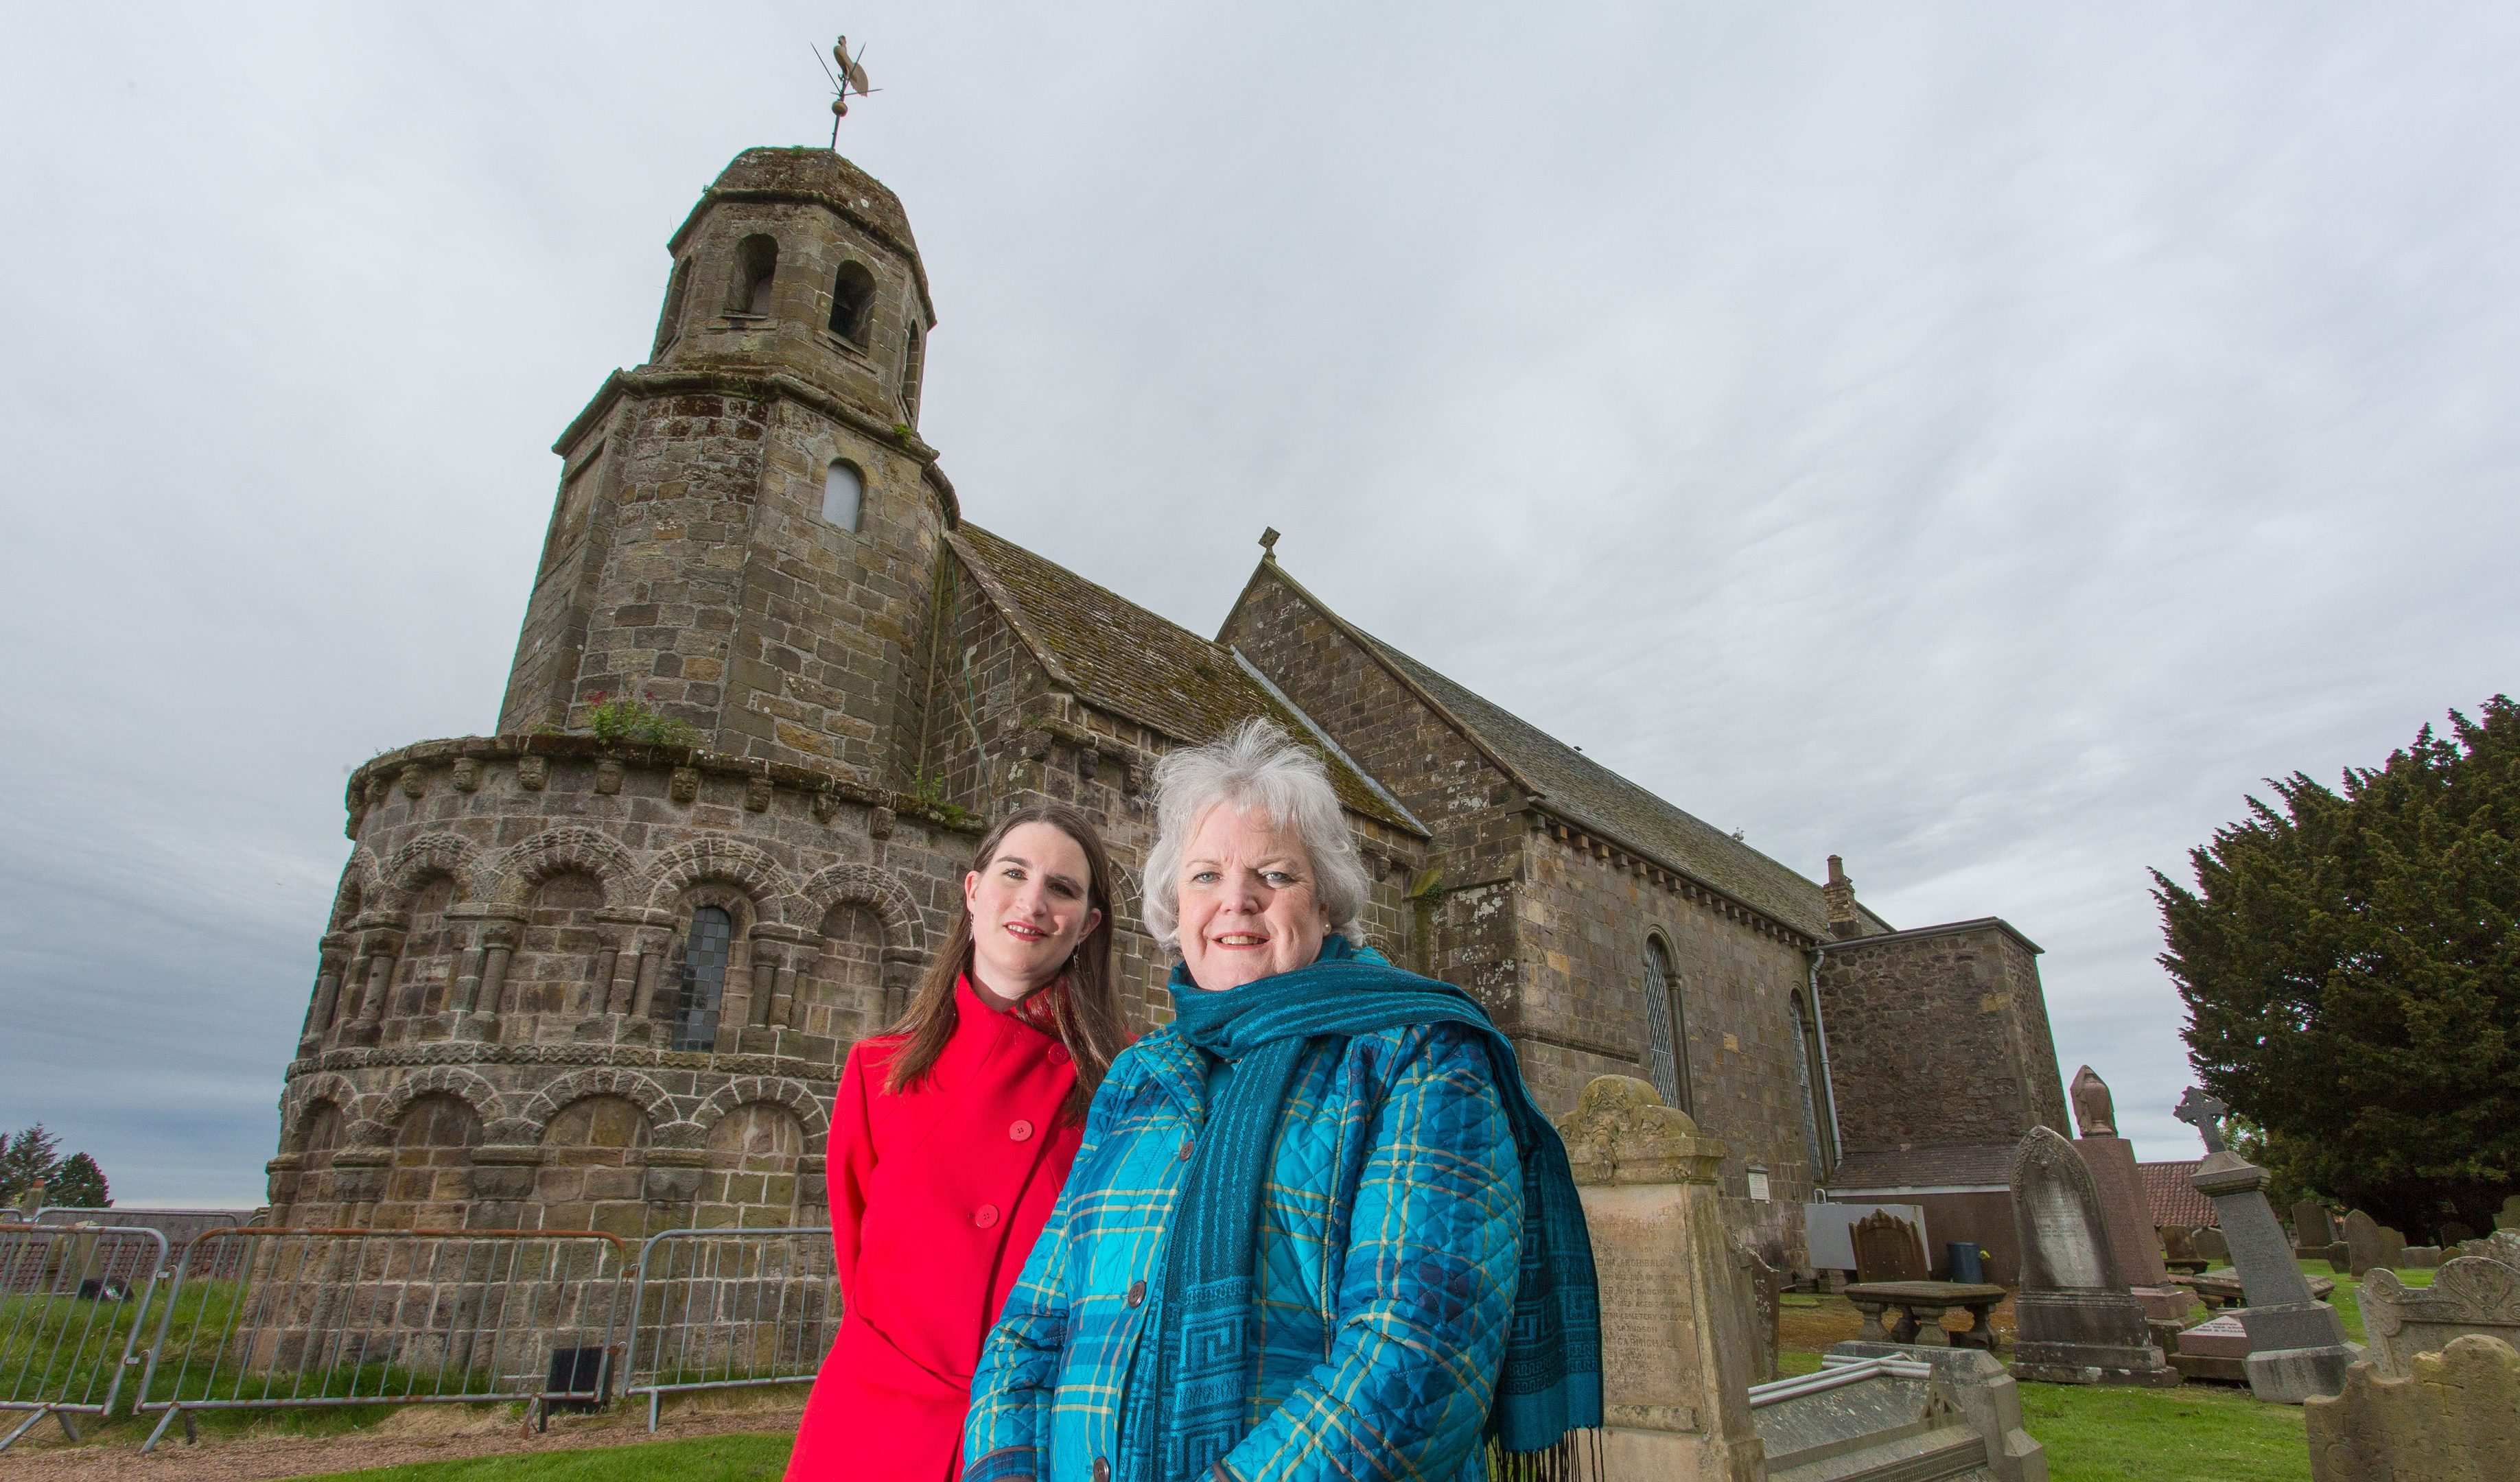 Paula Anderson, development manager, and Carol Petrie, project team manager outside the church.